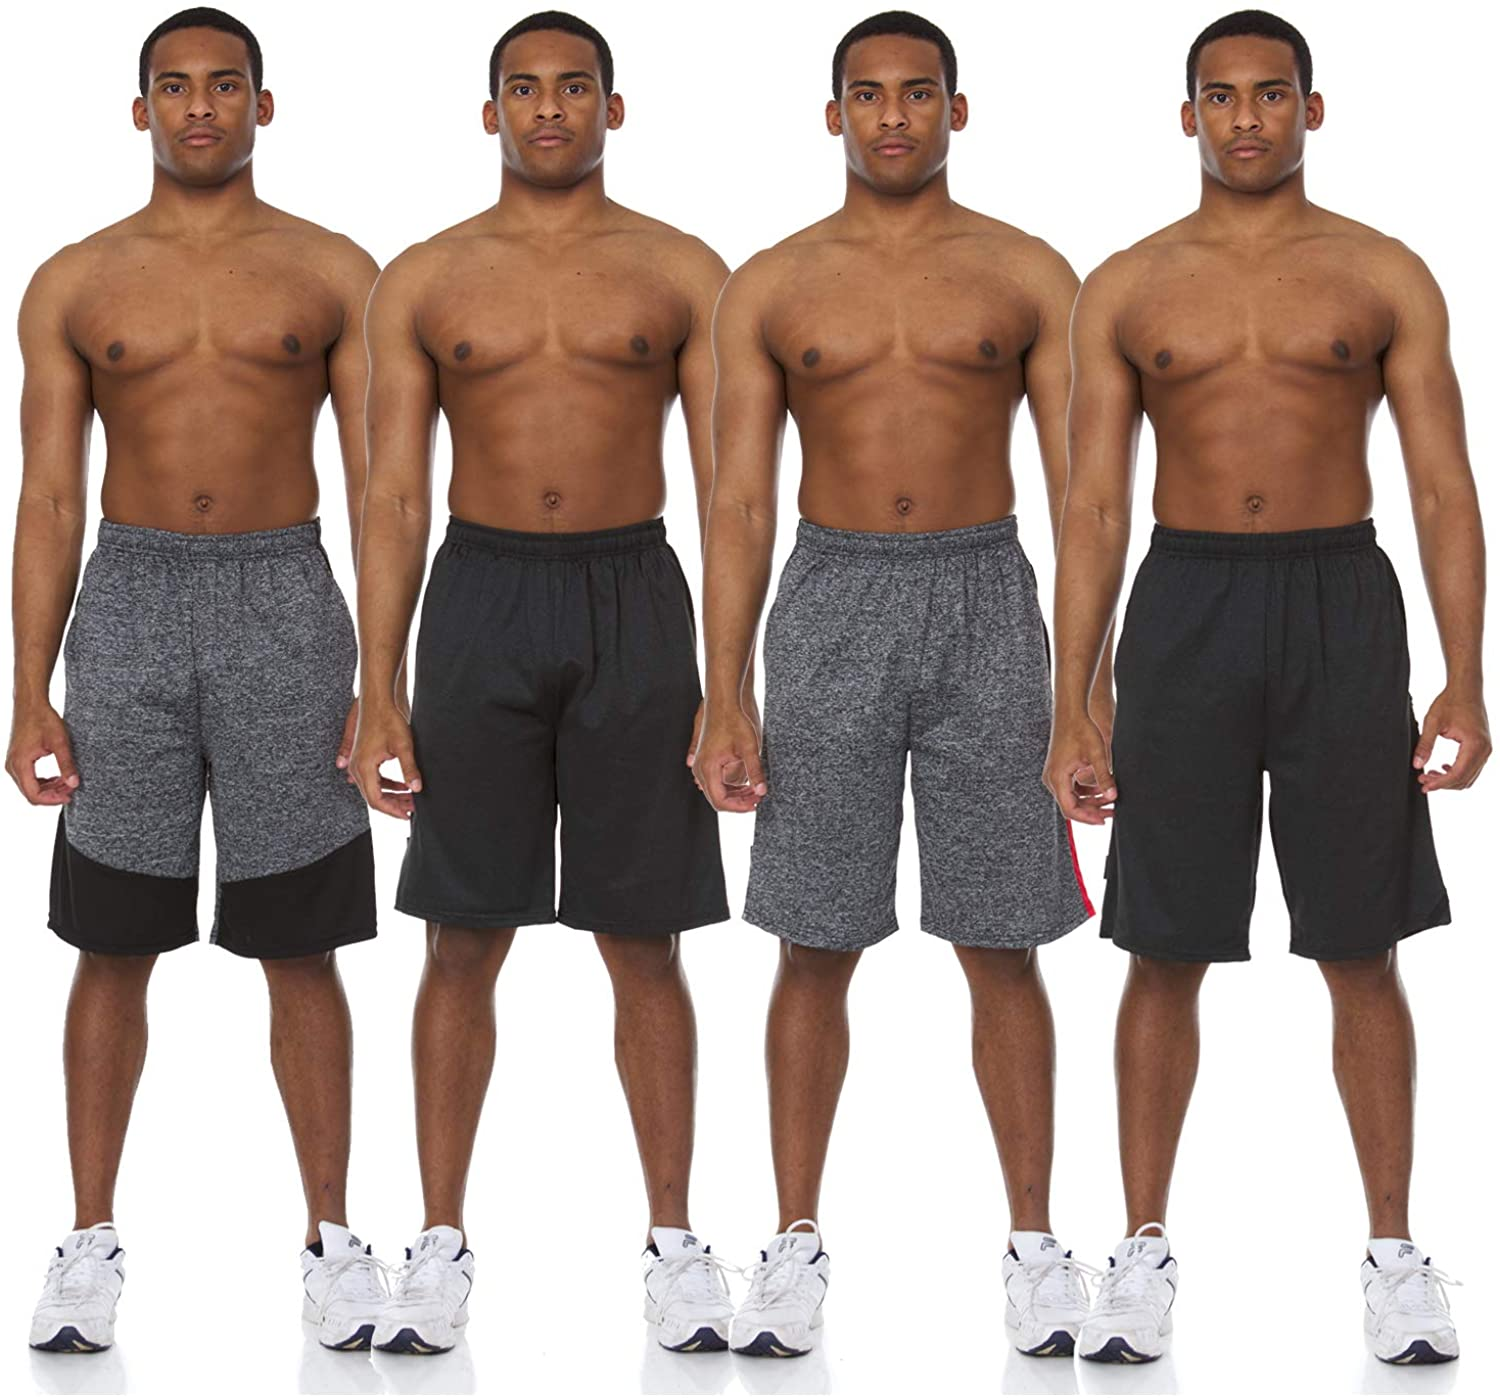 4 Pack: Men's Active Performance Athletic Basketball Gym Knit Shorts with Pockets Big and Tall S-4XL